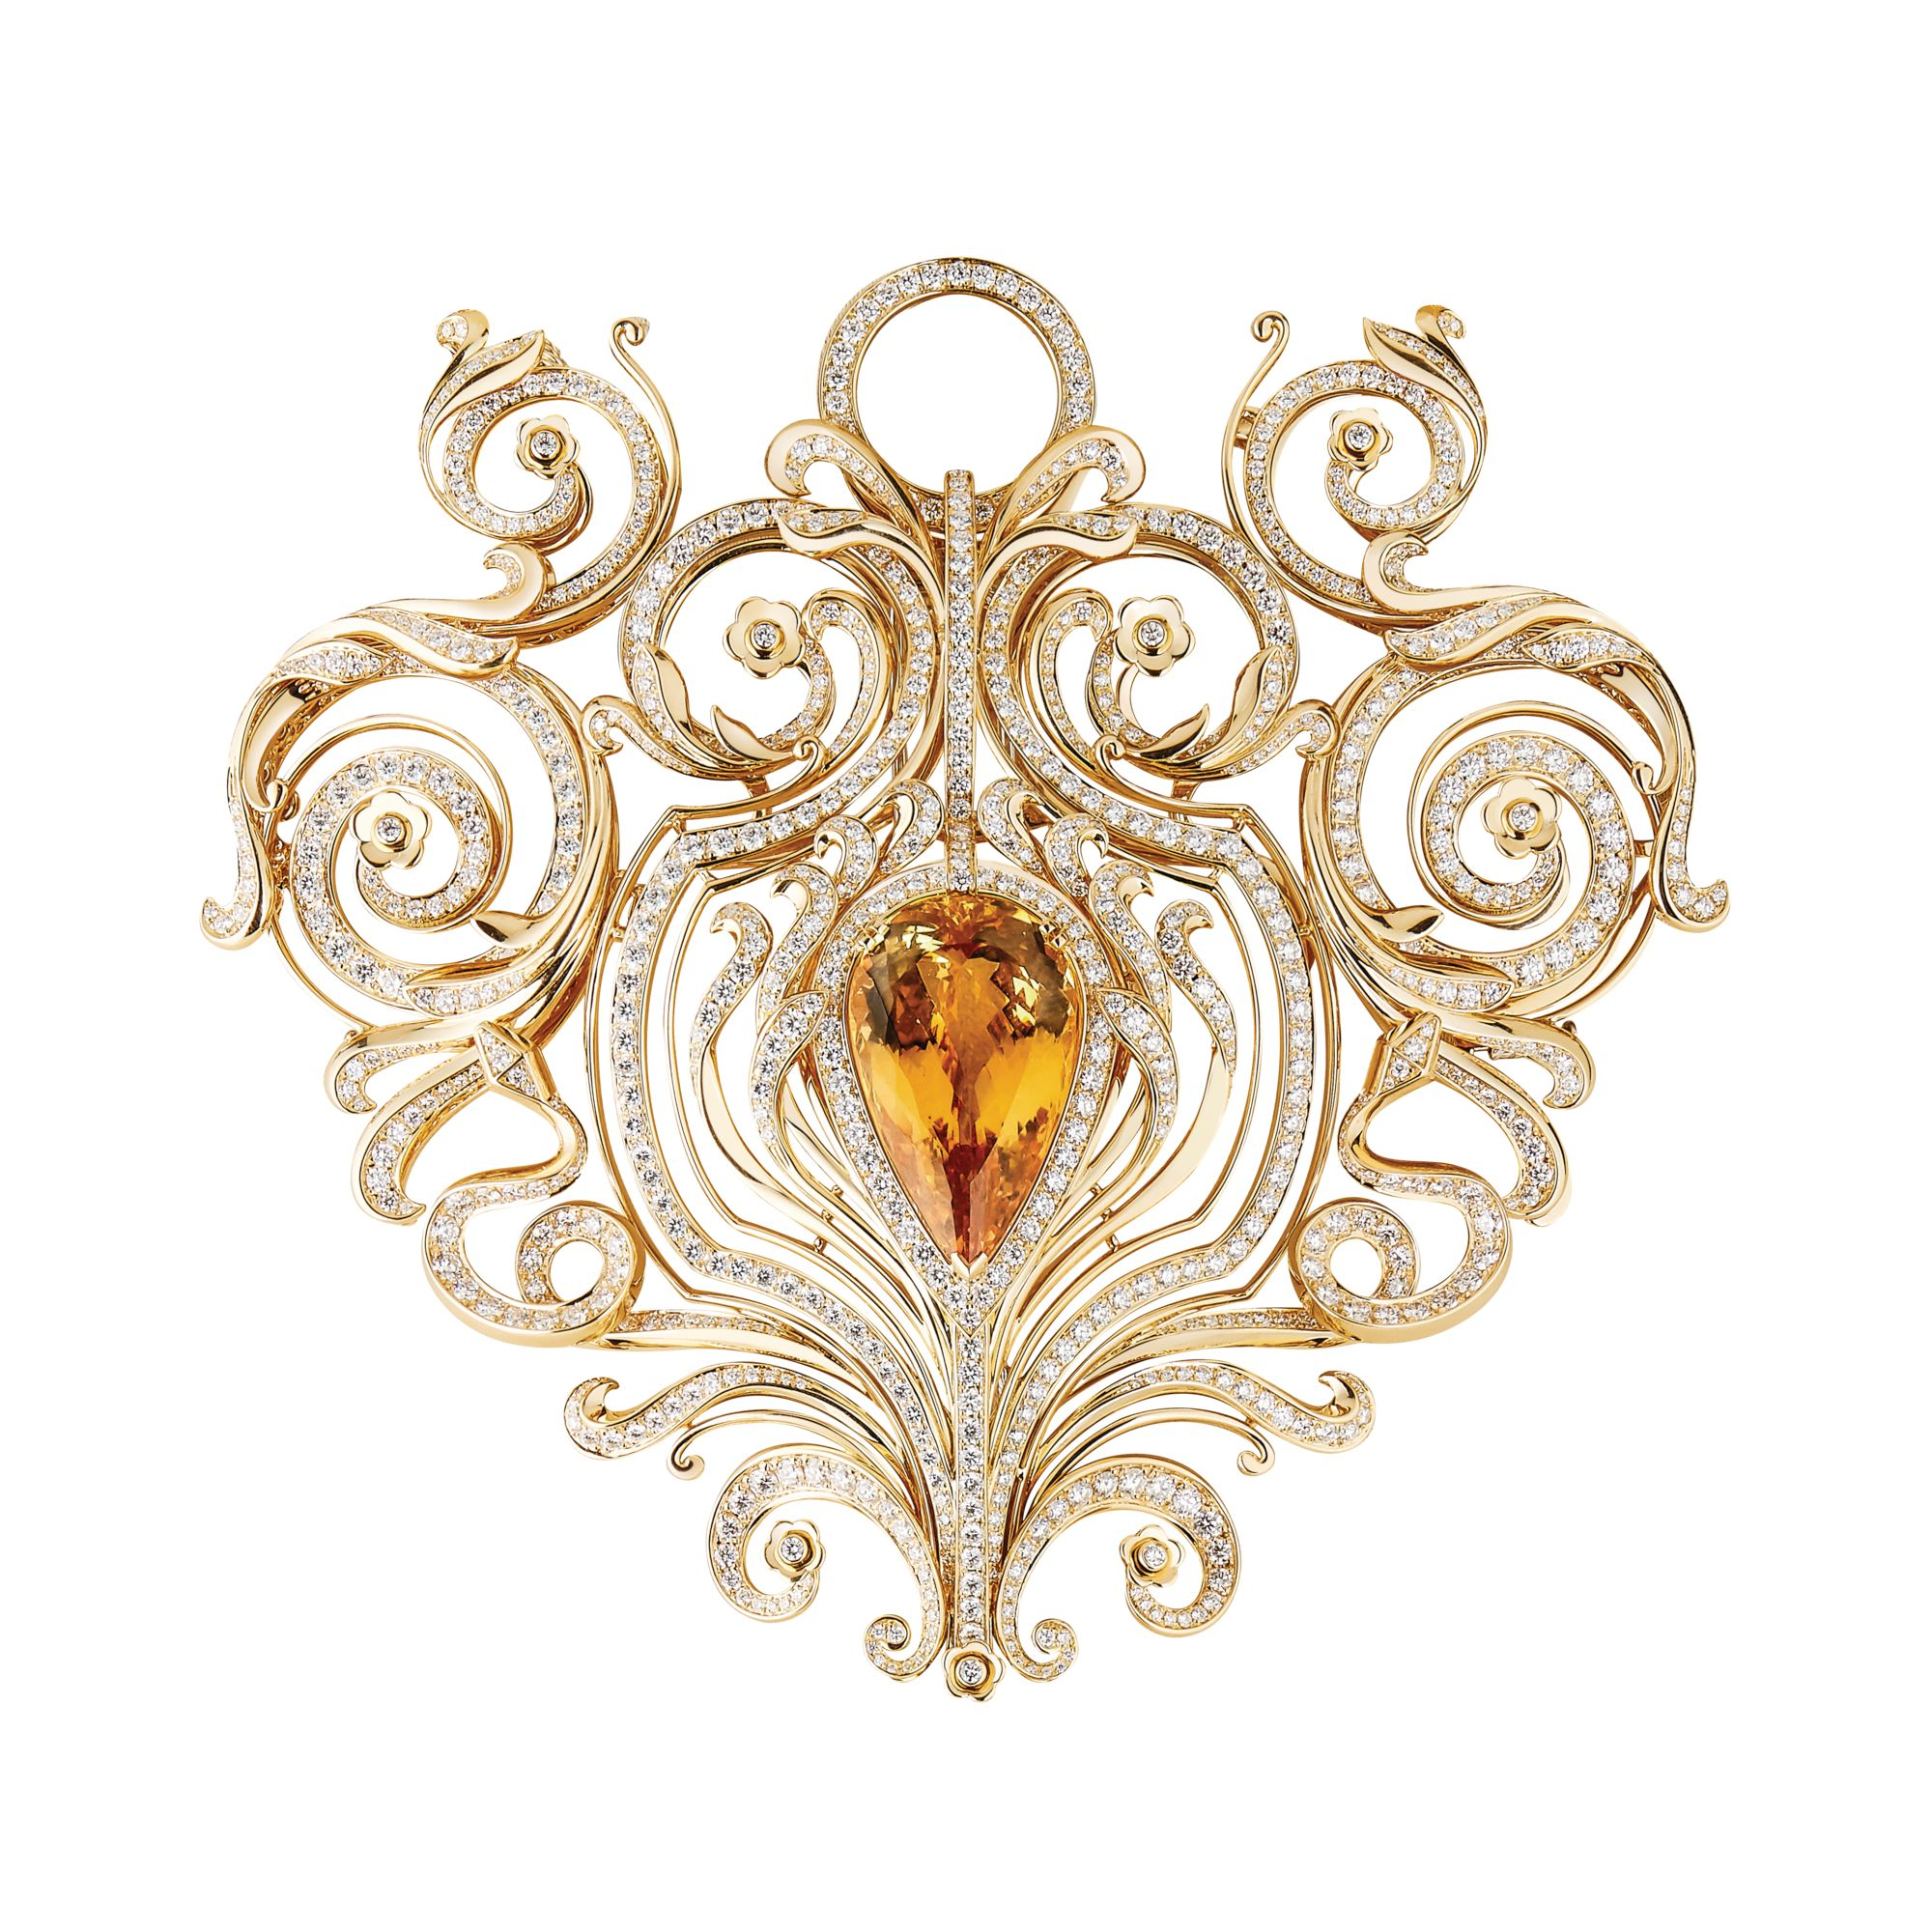 Armoiries necklace in yellow gold set with an imperial topaz and diamonds by Boucheron